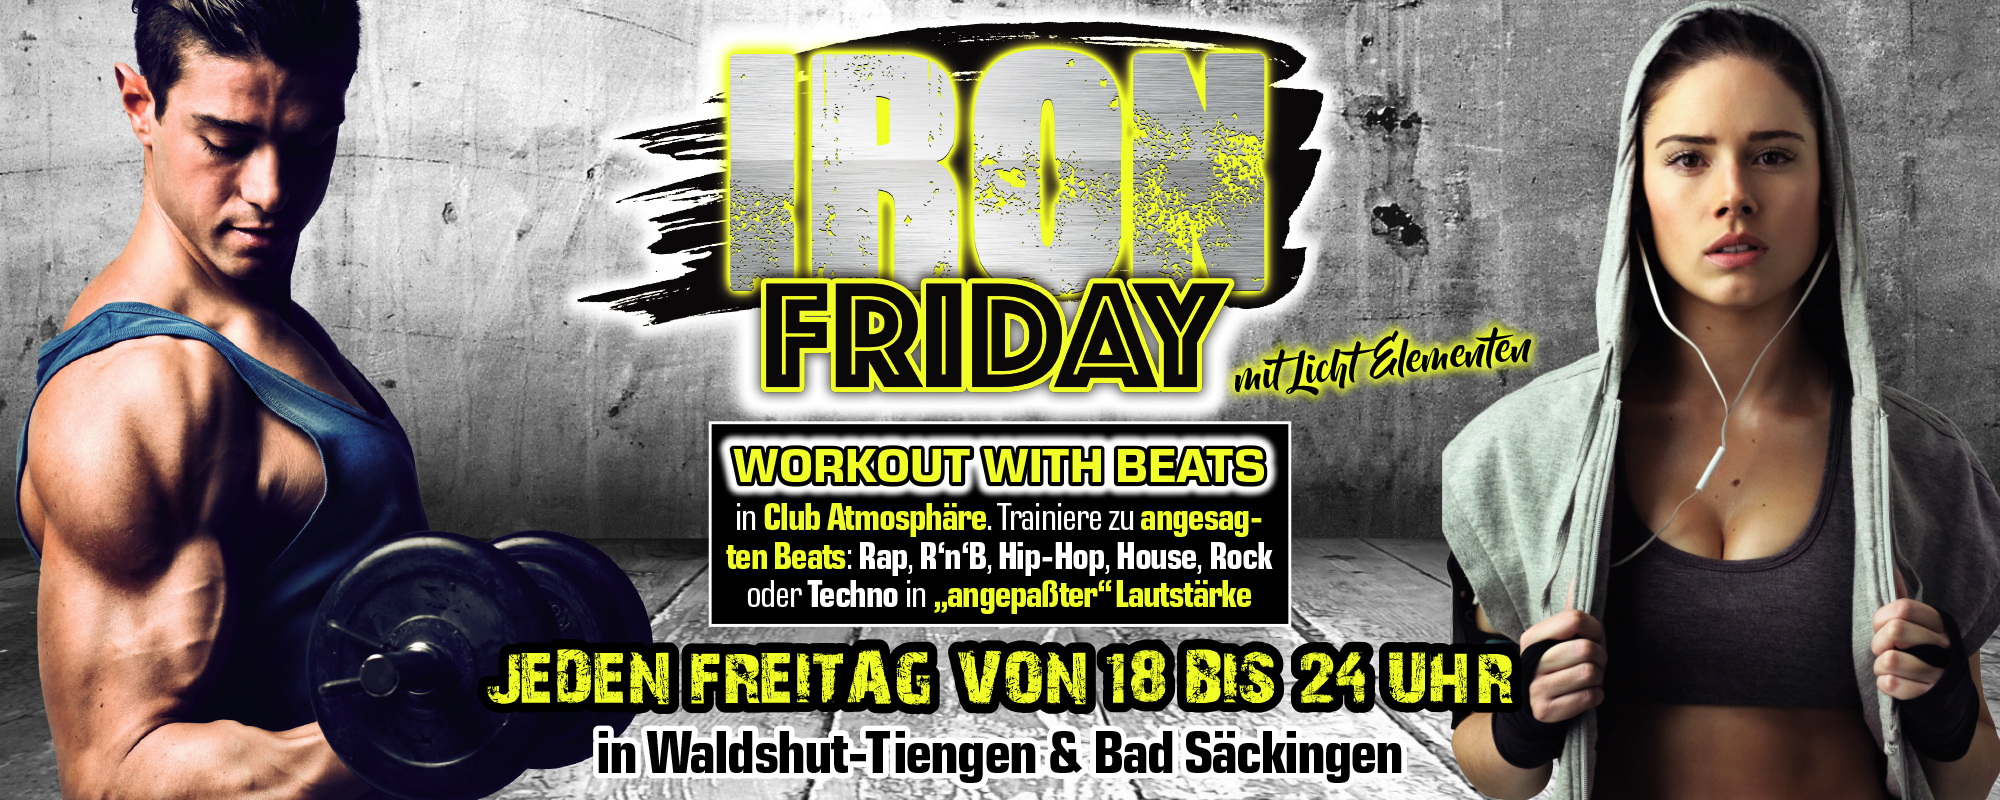 Iron-Friday - Pro Fitness Discounter